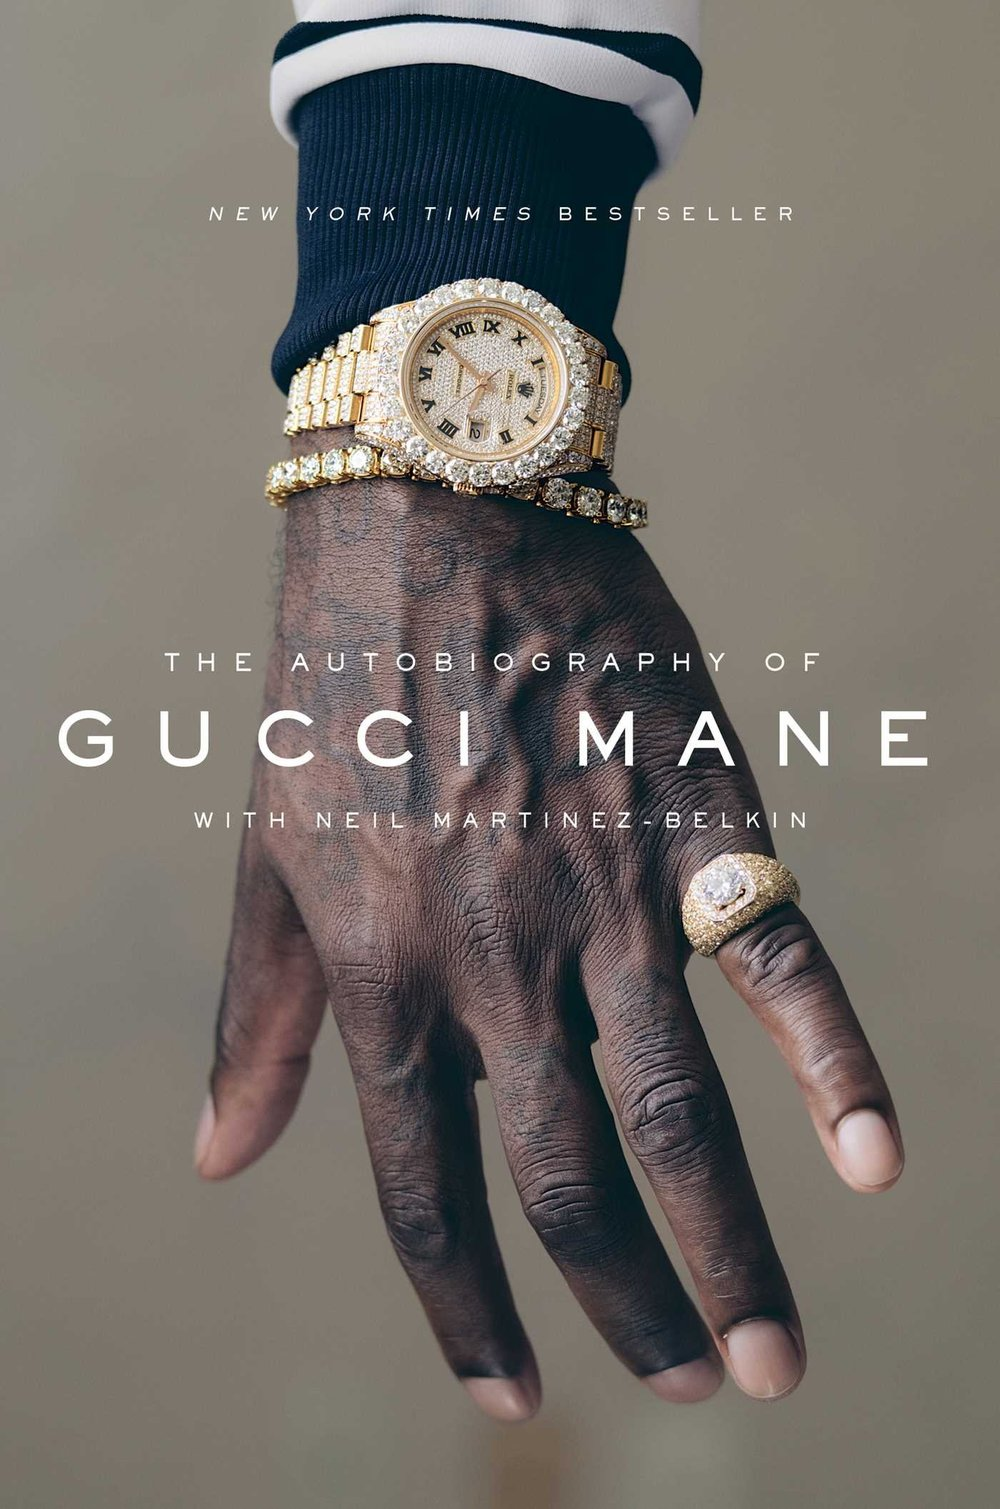 """The Autobiography of Gucci Mane by Gucci Mane with Neil Martinez-Belkin - A fascinating look at the life and story behind the artist, Gucci Mane. Gucci's singles, albums, and mixtapes have been in rotation for me since middle school. His autobiography takes us even deeper and gives us the reader one of the most authentic looks at Gucci's childhood, transition to musician, and beyond. The book tackles the realities and themes of poverty, incarceration, and addiction. Gucci's physical glow-up has been """"#goals"""" for many, but through his autobiography readers are able to see the internal glow-up, which I would argue is most important. Gucci Mane indeed shakes off all his demons and is back to himself."""